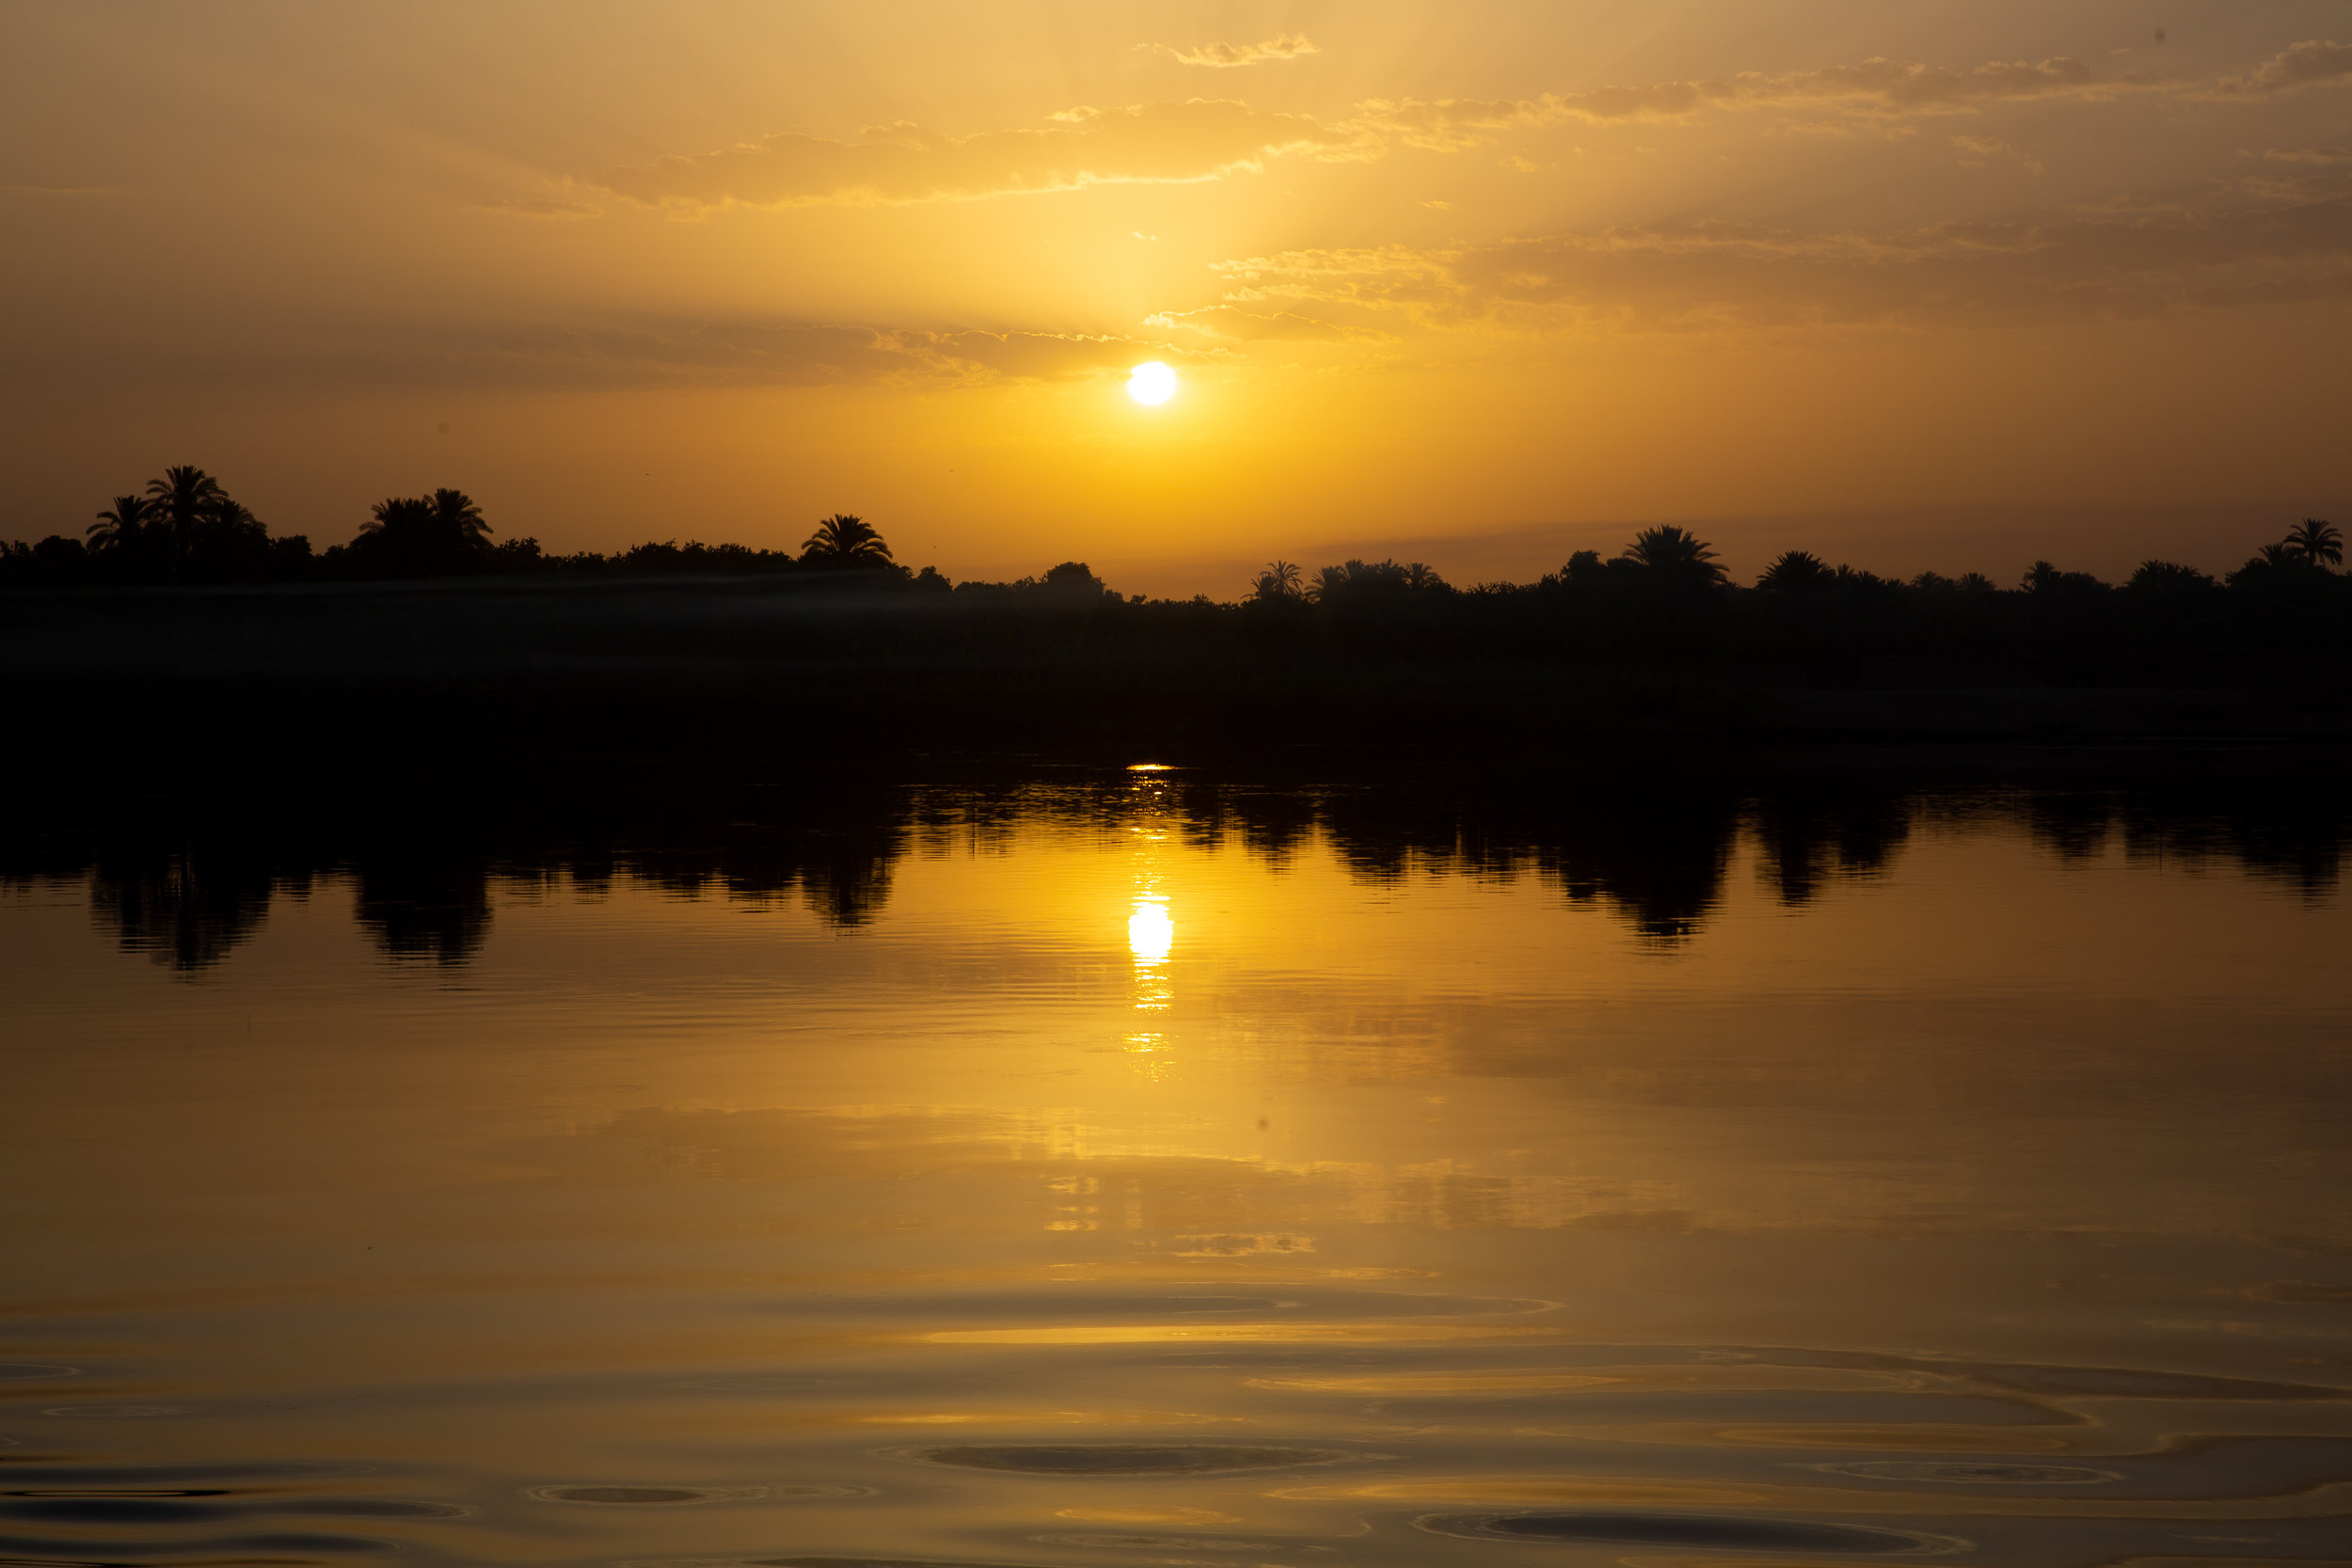 Sunset on the Nile - Egypt - Wild Earth Expeditions